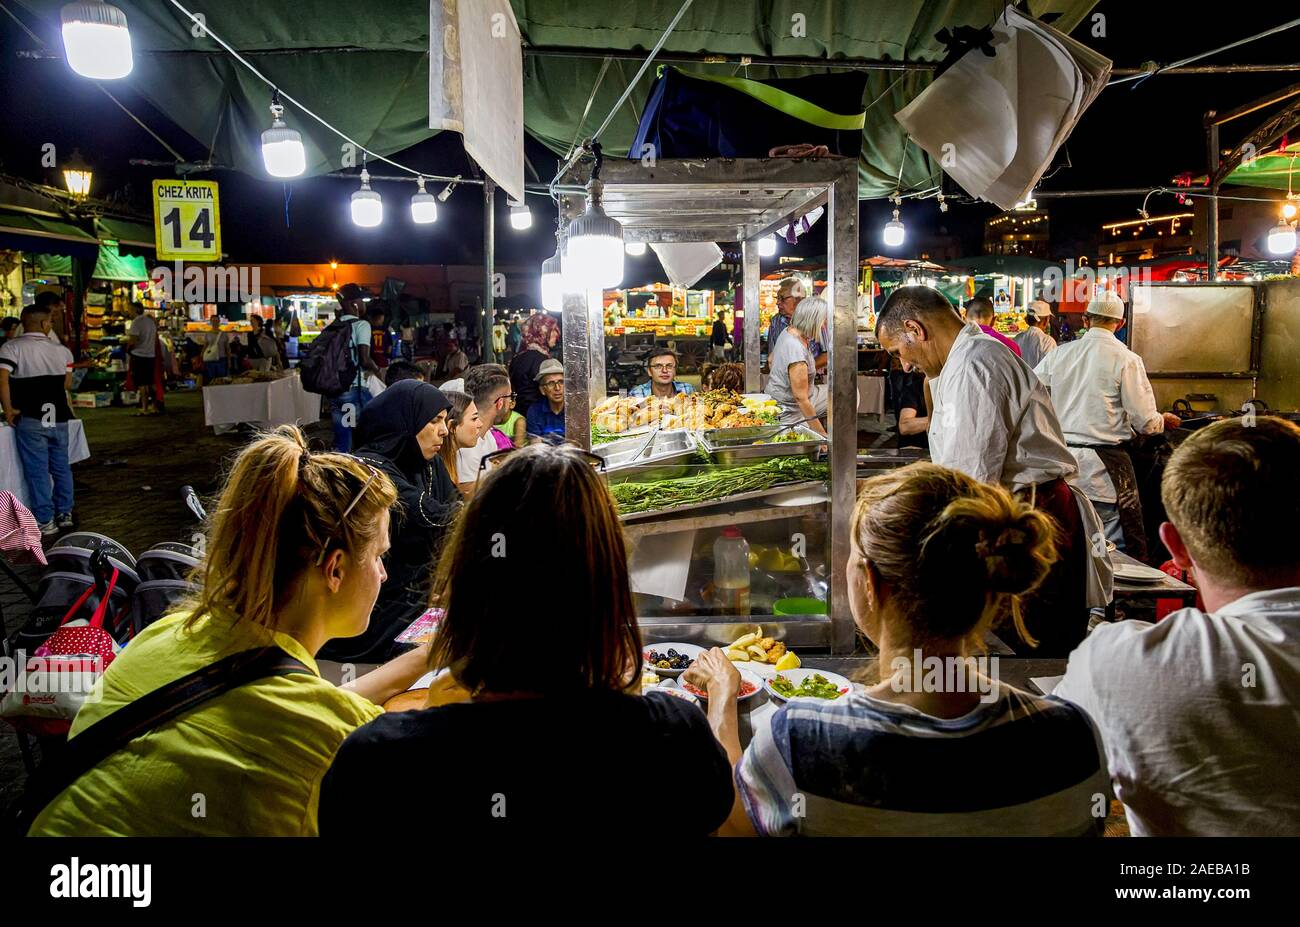 Tourists enjoy the meal around the long trestle tables,at night in Jemaa el-Fnaa or  Djema el-Fna  market square.Medina of Marrakesh,Morocco Stock Photo